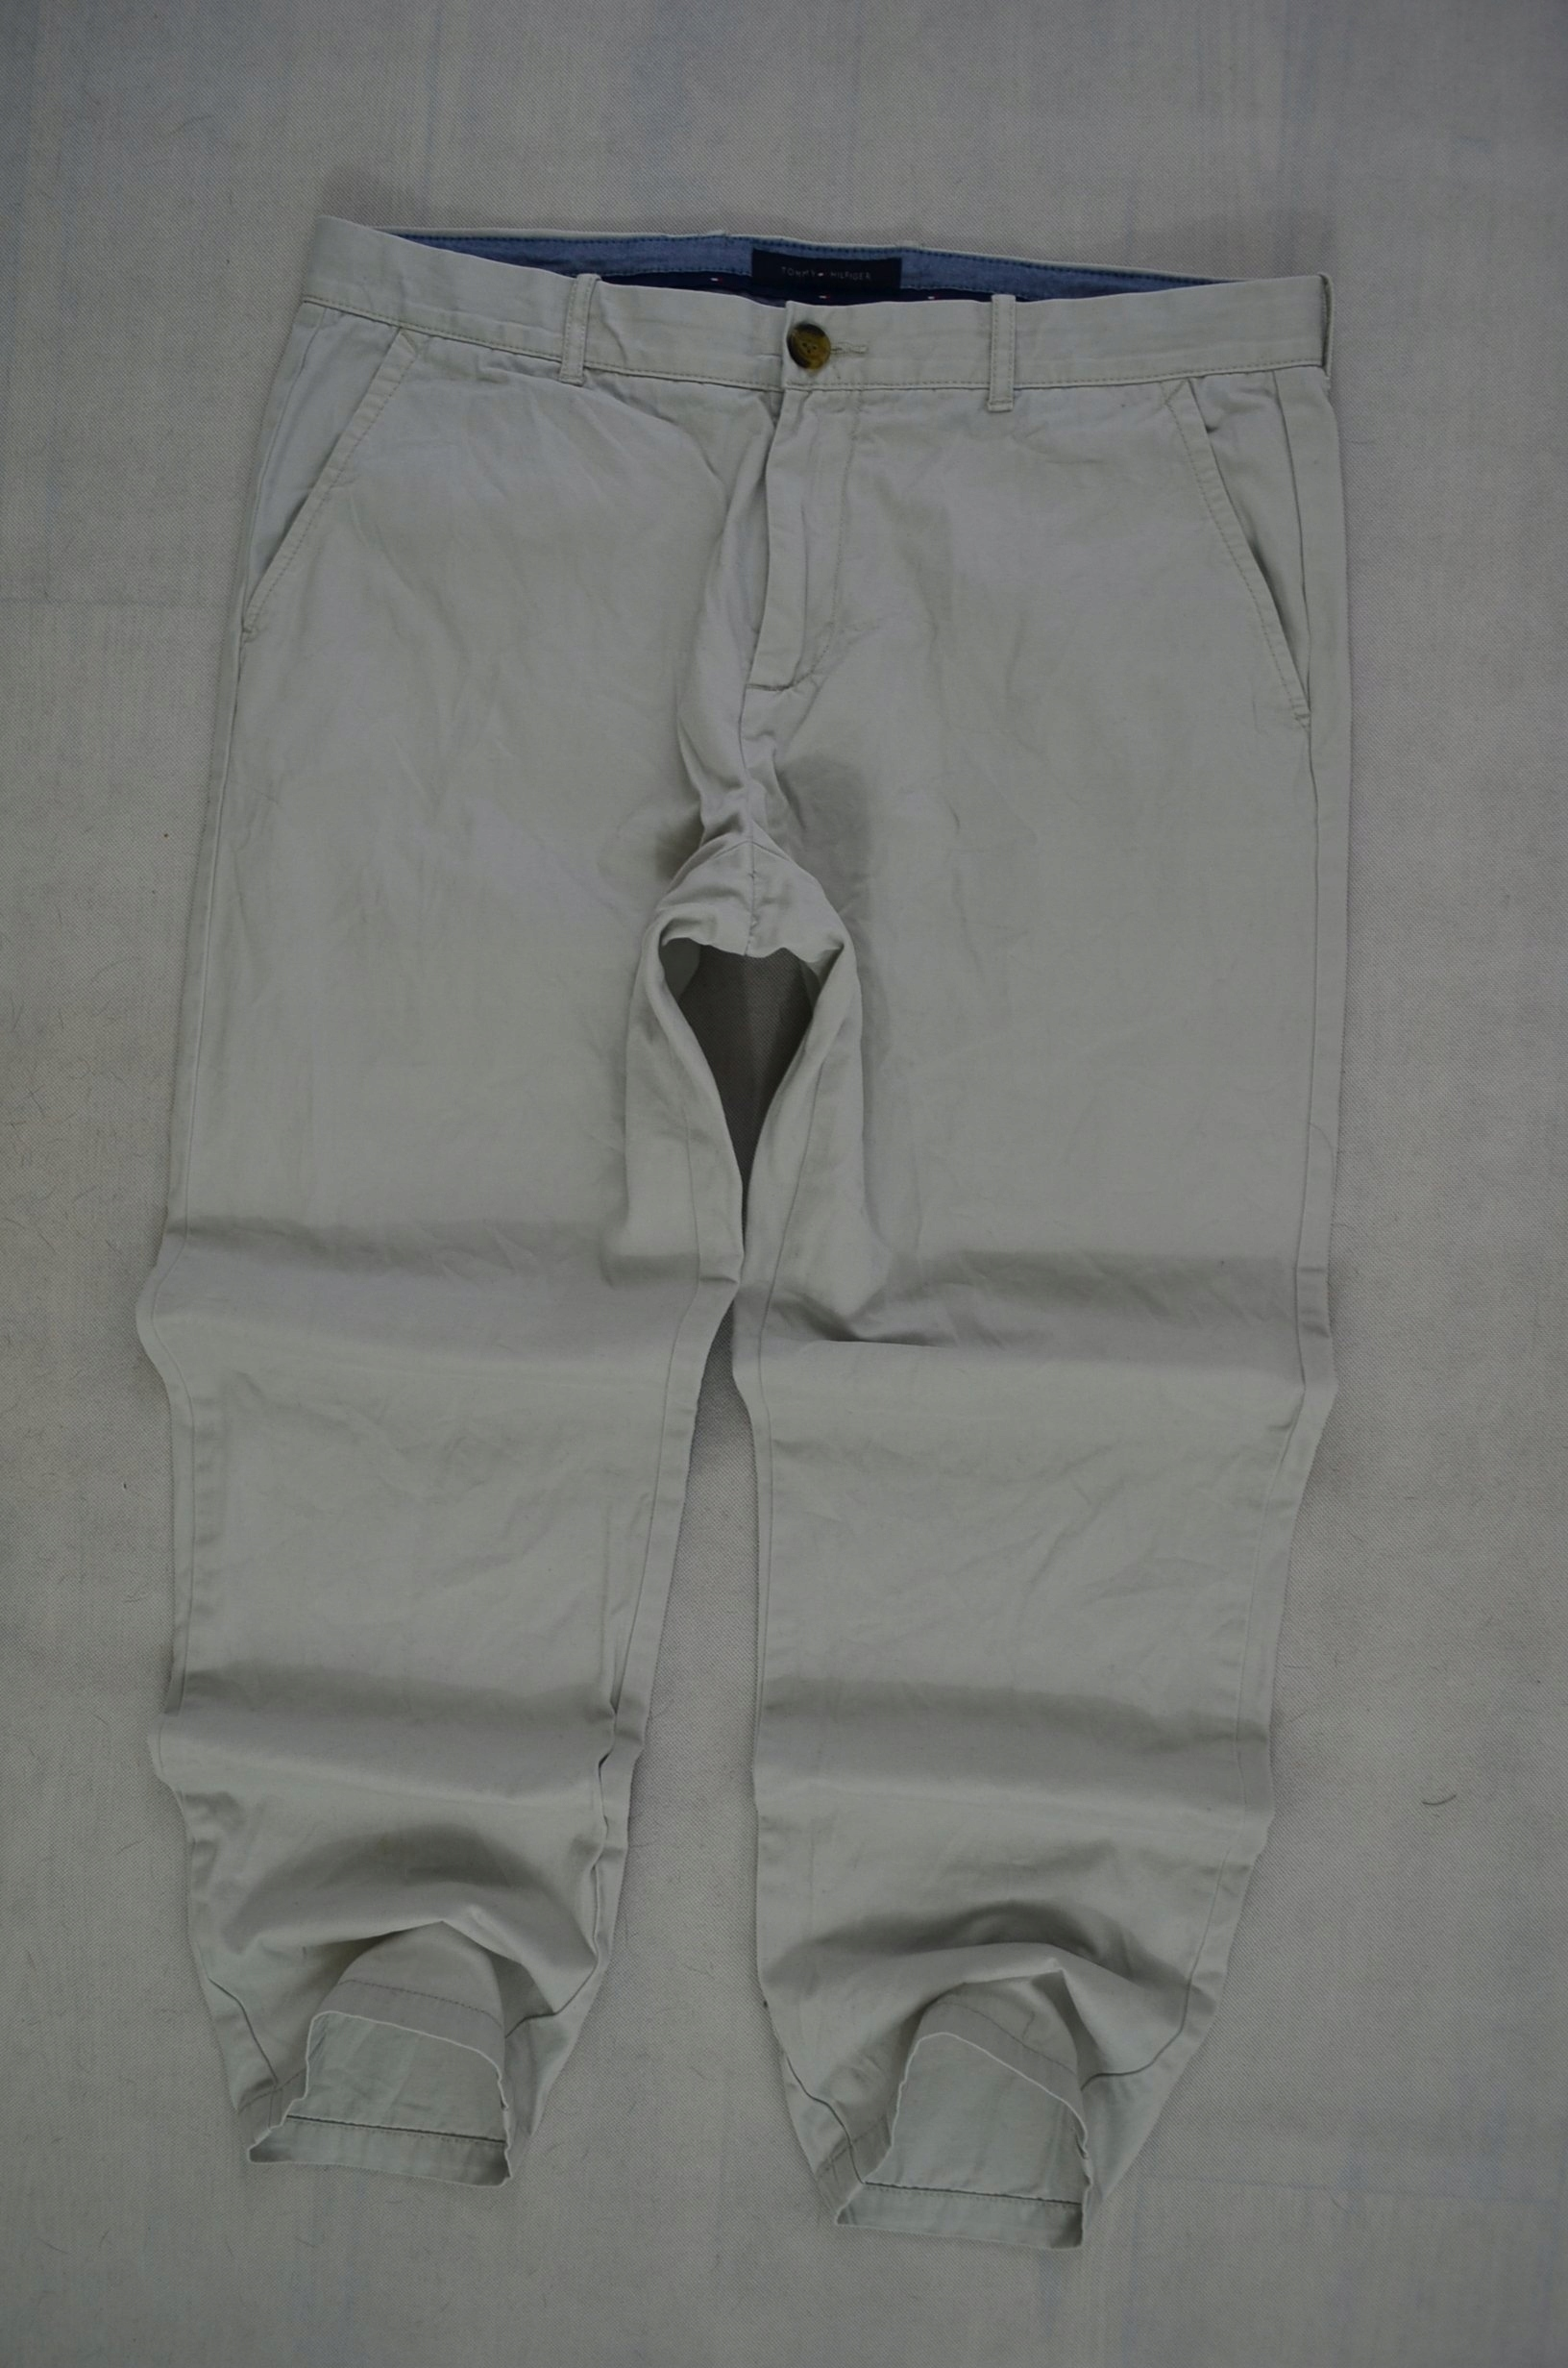 TOMMY HILFIGER SPODNIE CHINO LOGO TH 91 cm *34/30*